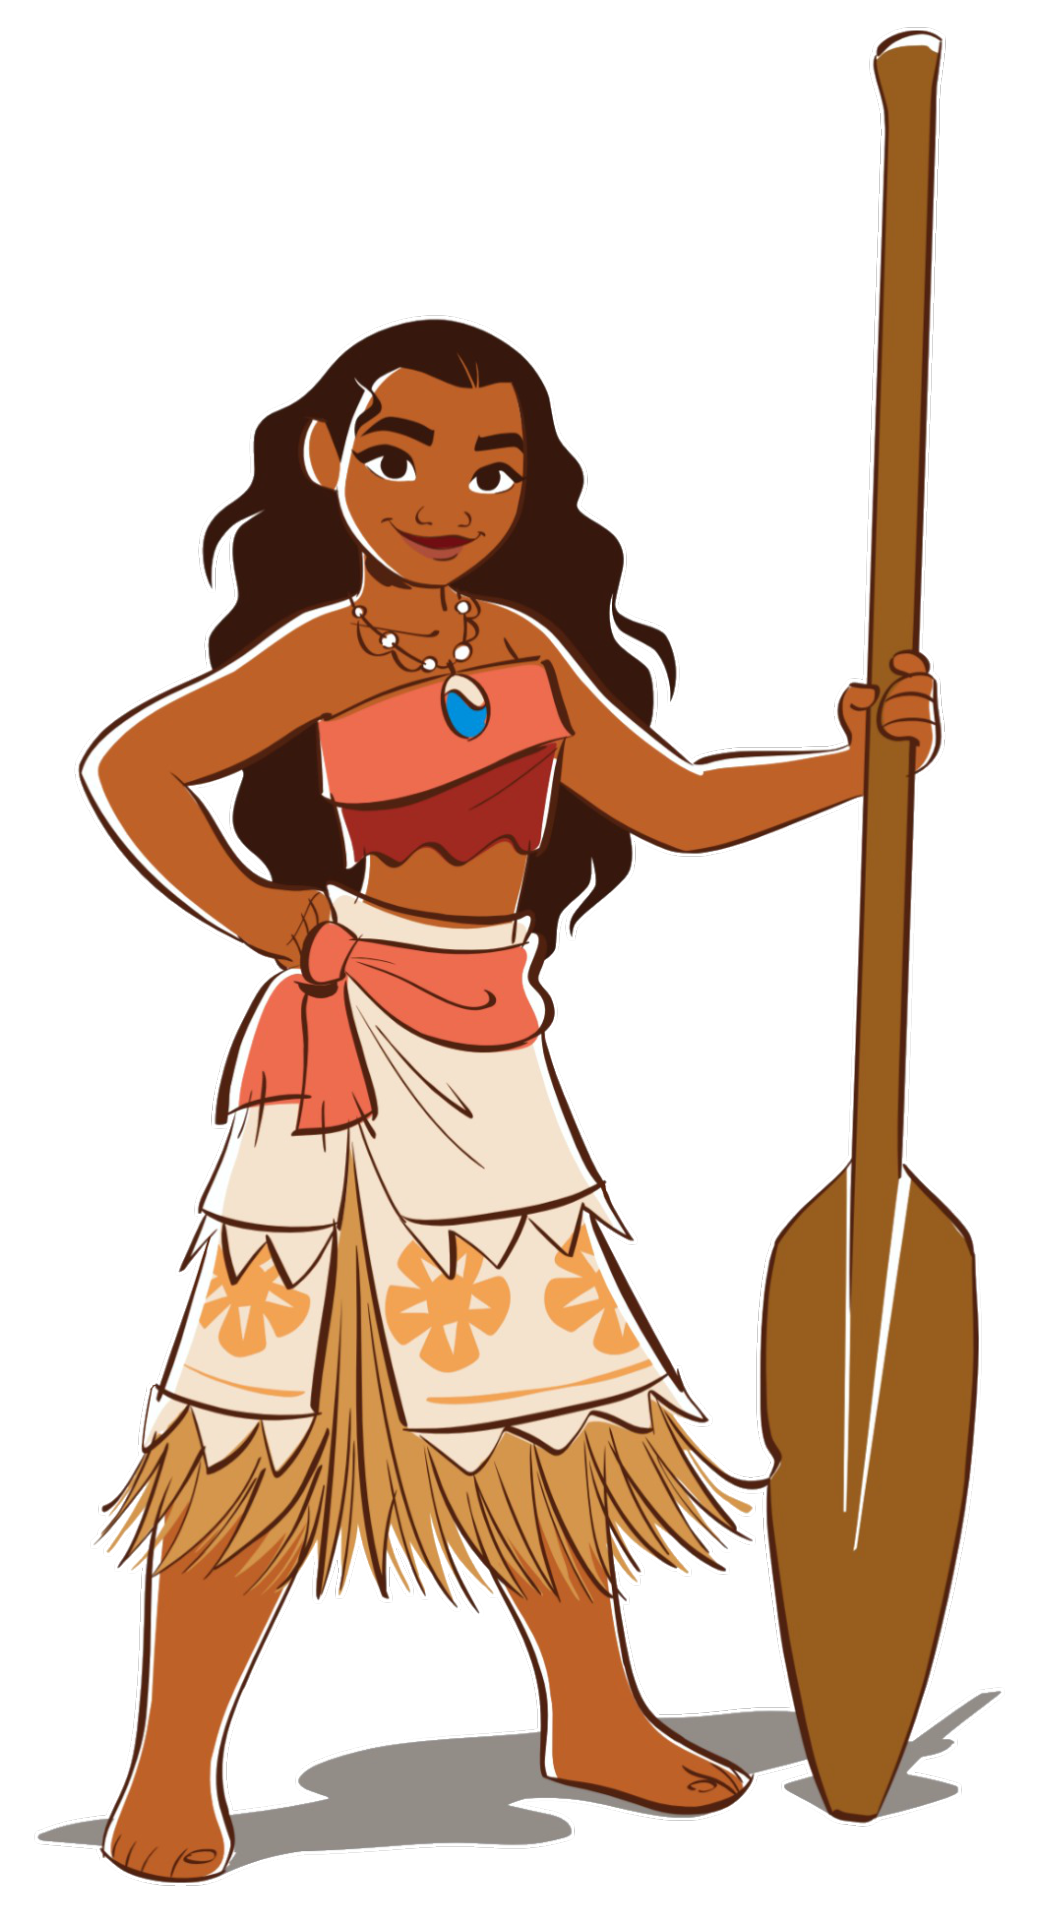 clipart transparent download Moana black and white clipart. Image d artwork png